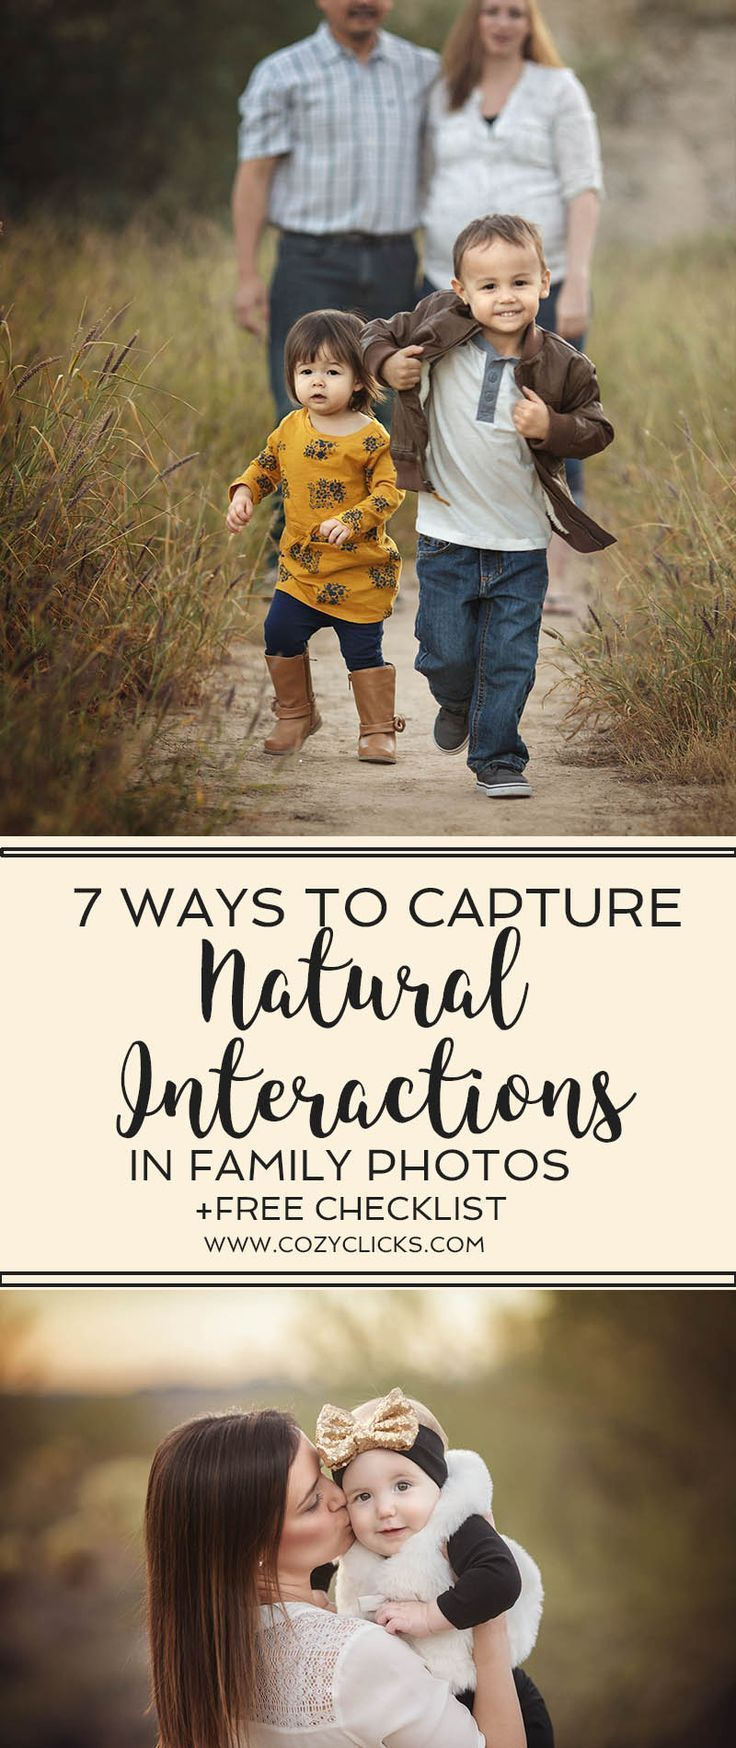 Photography tips on how to pose families using natural interactions. Easy ways for new photographers to capture natural poses in family photography